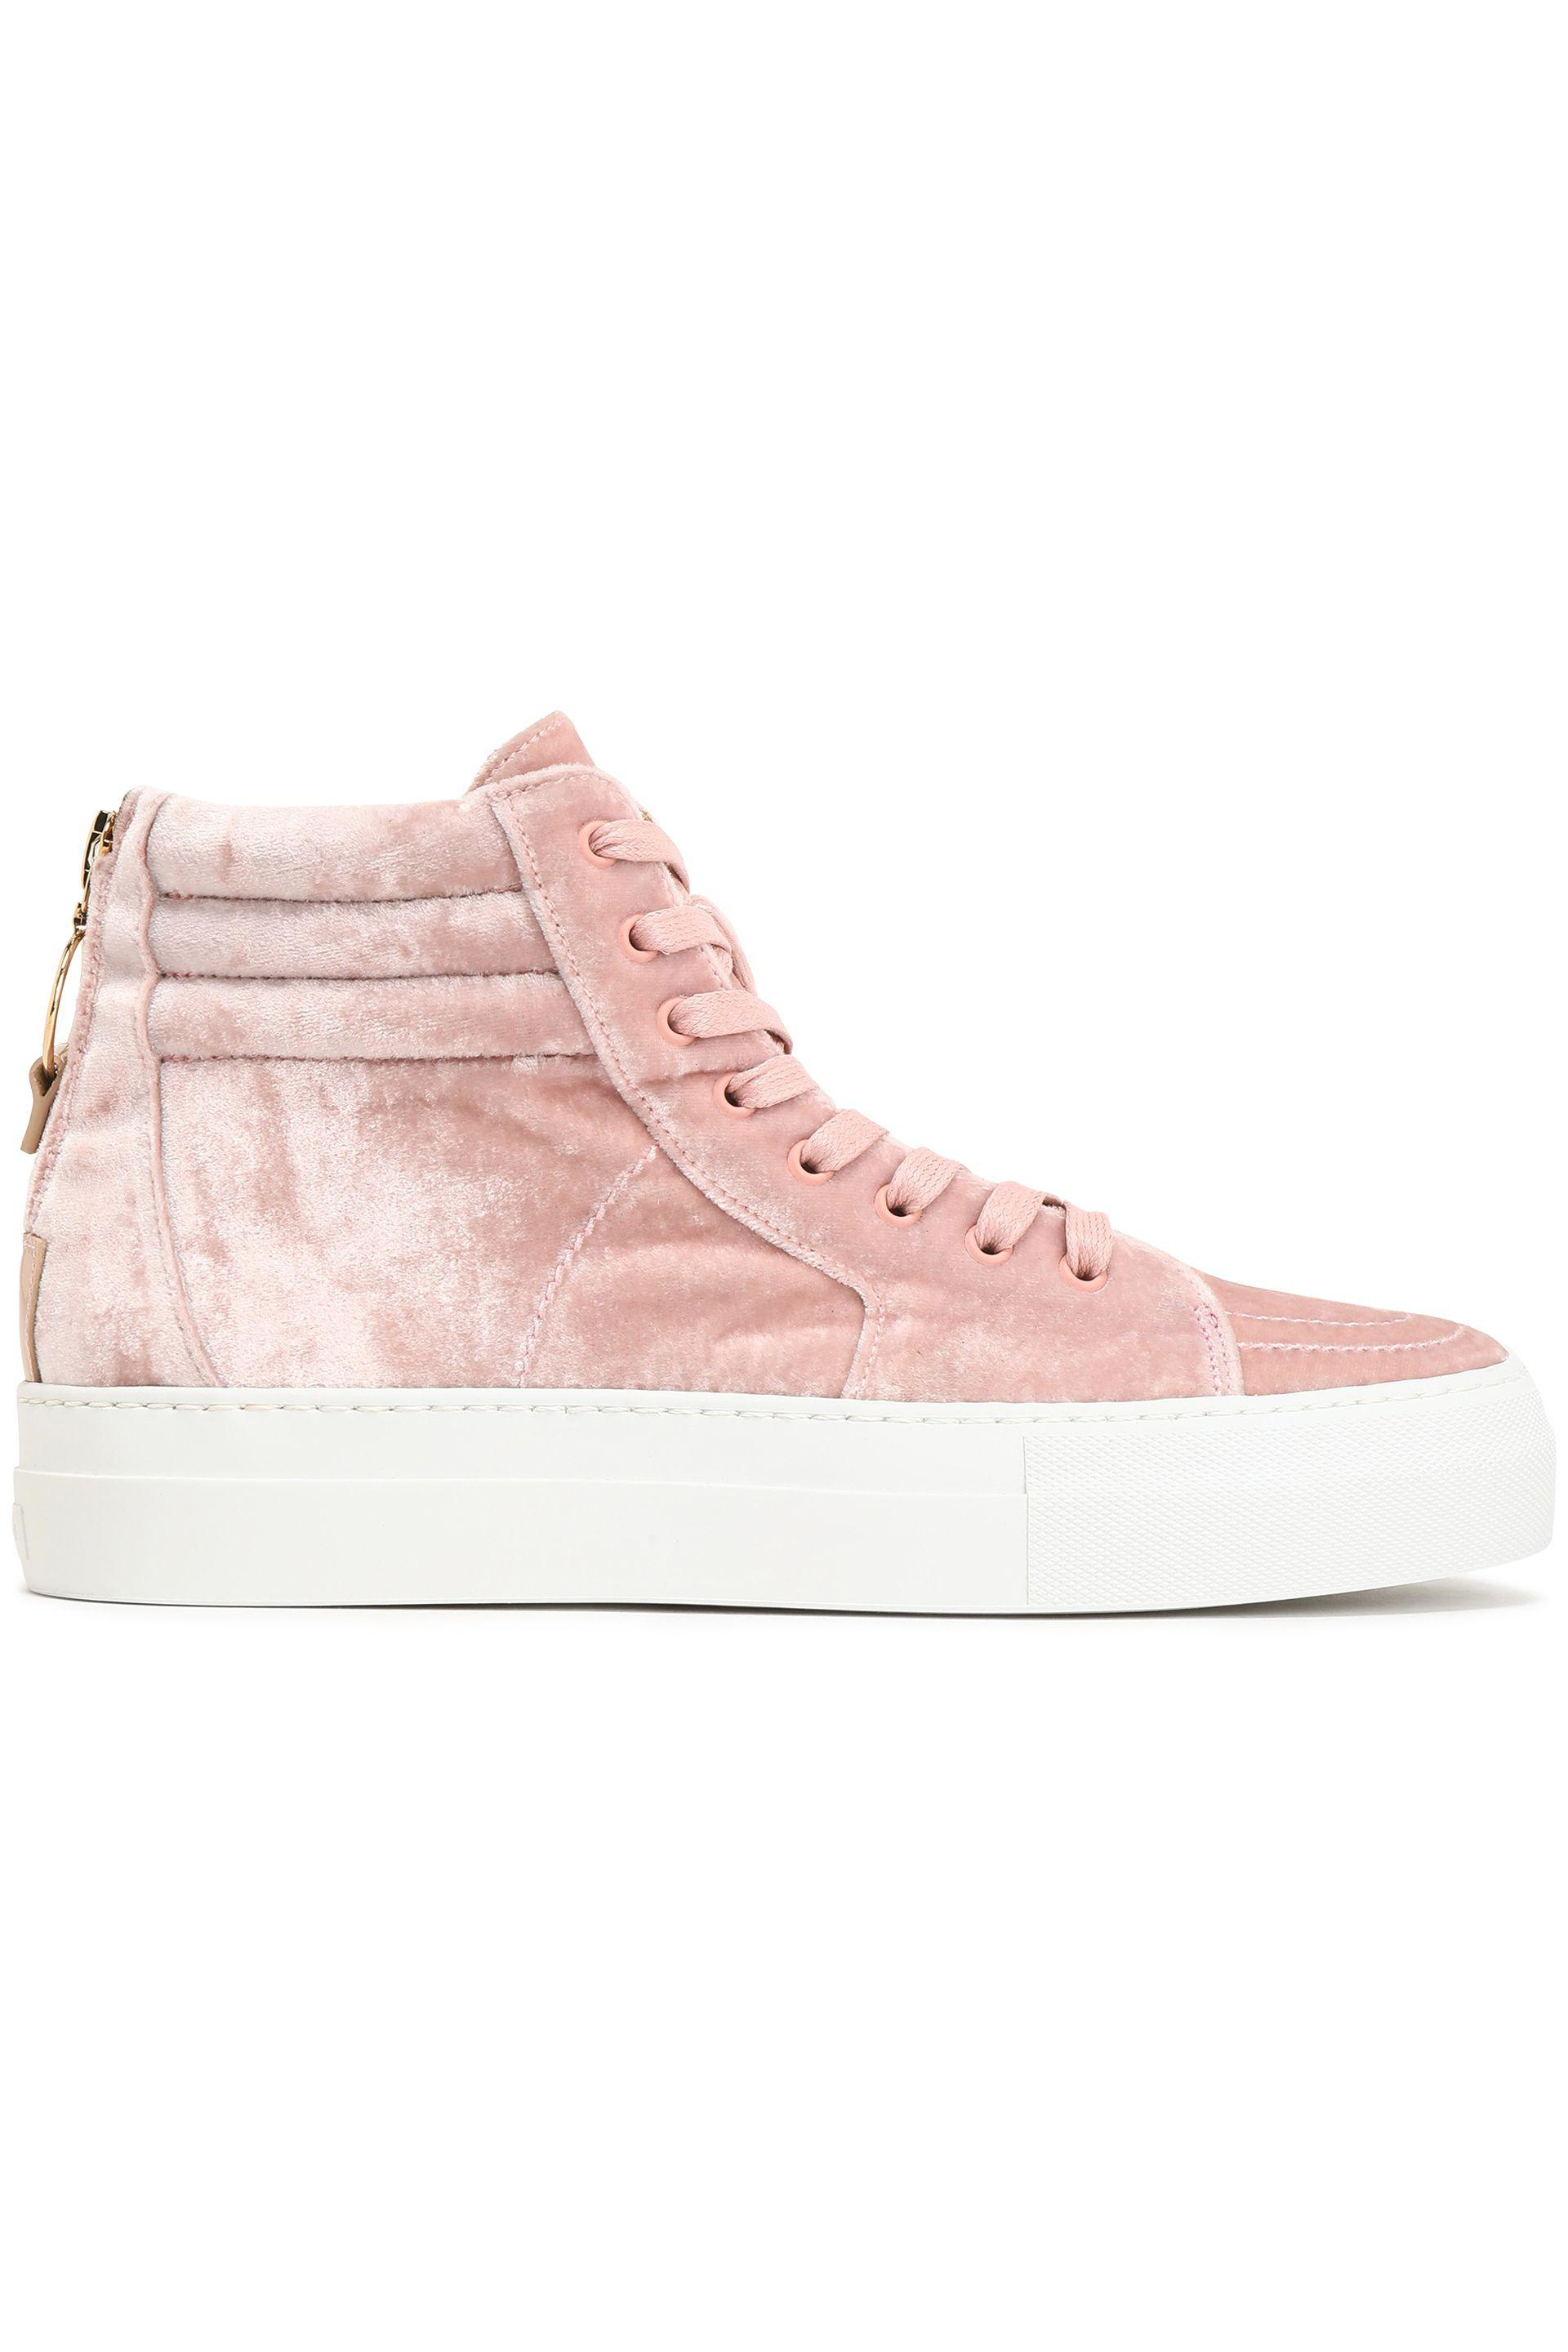 premium selection 4e8bc 67a82 buscemi-Blush-Embellished-Velvet-High-top-Sneakers.jpeg